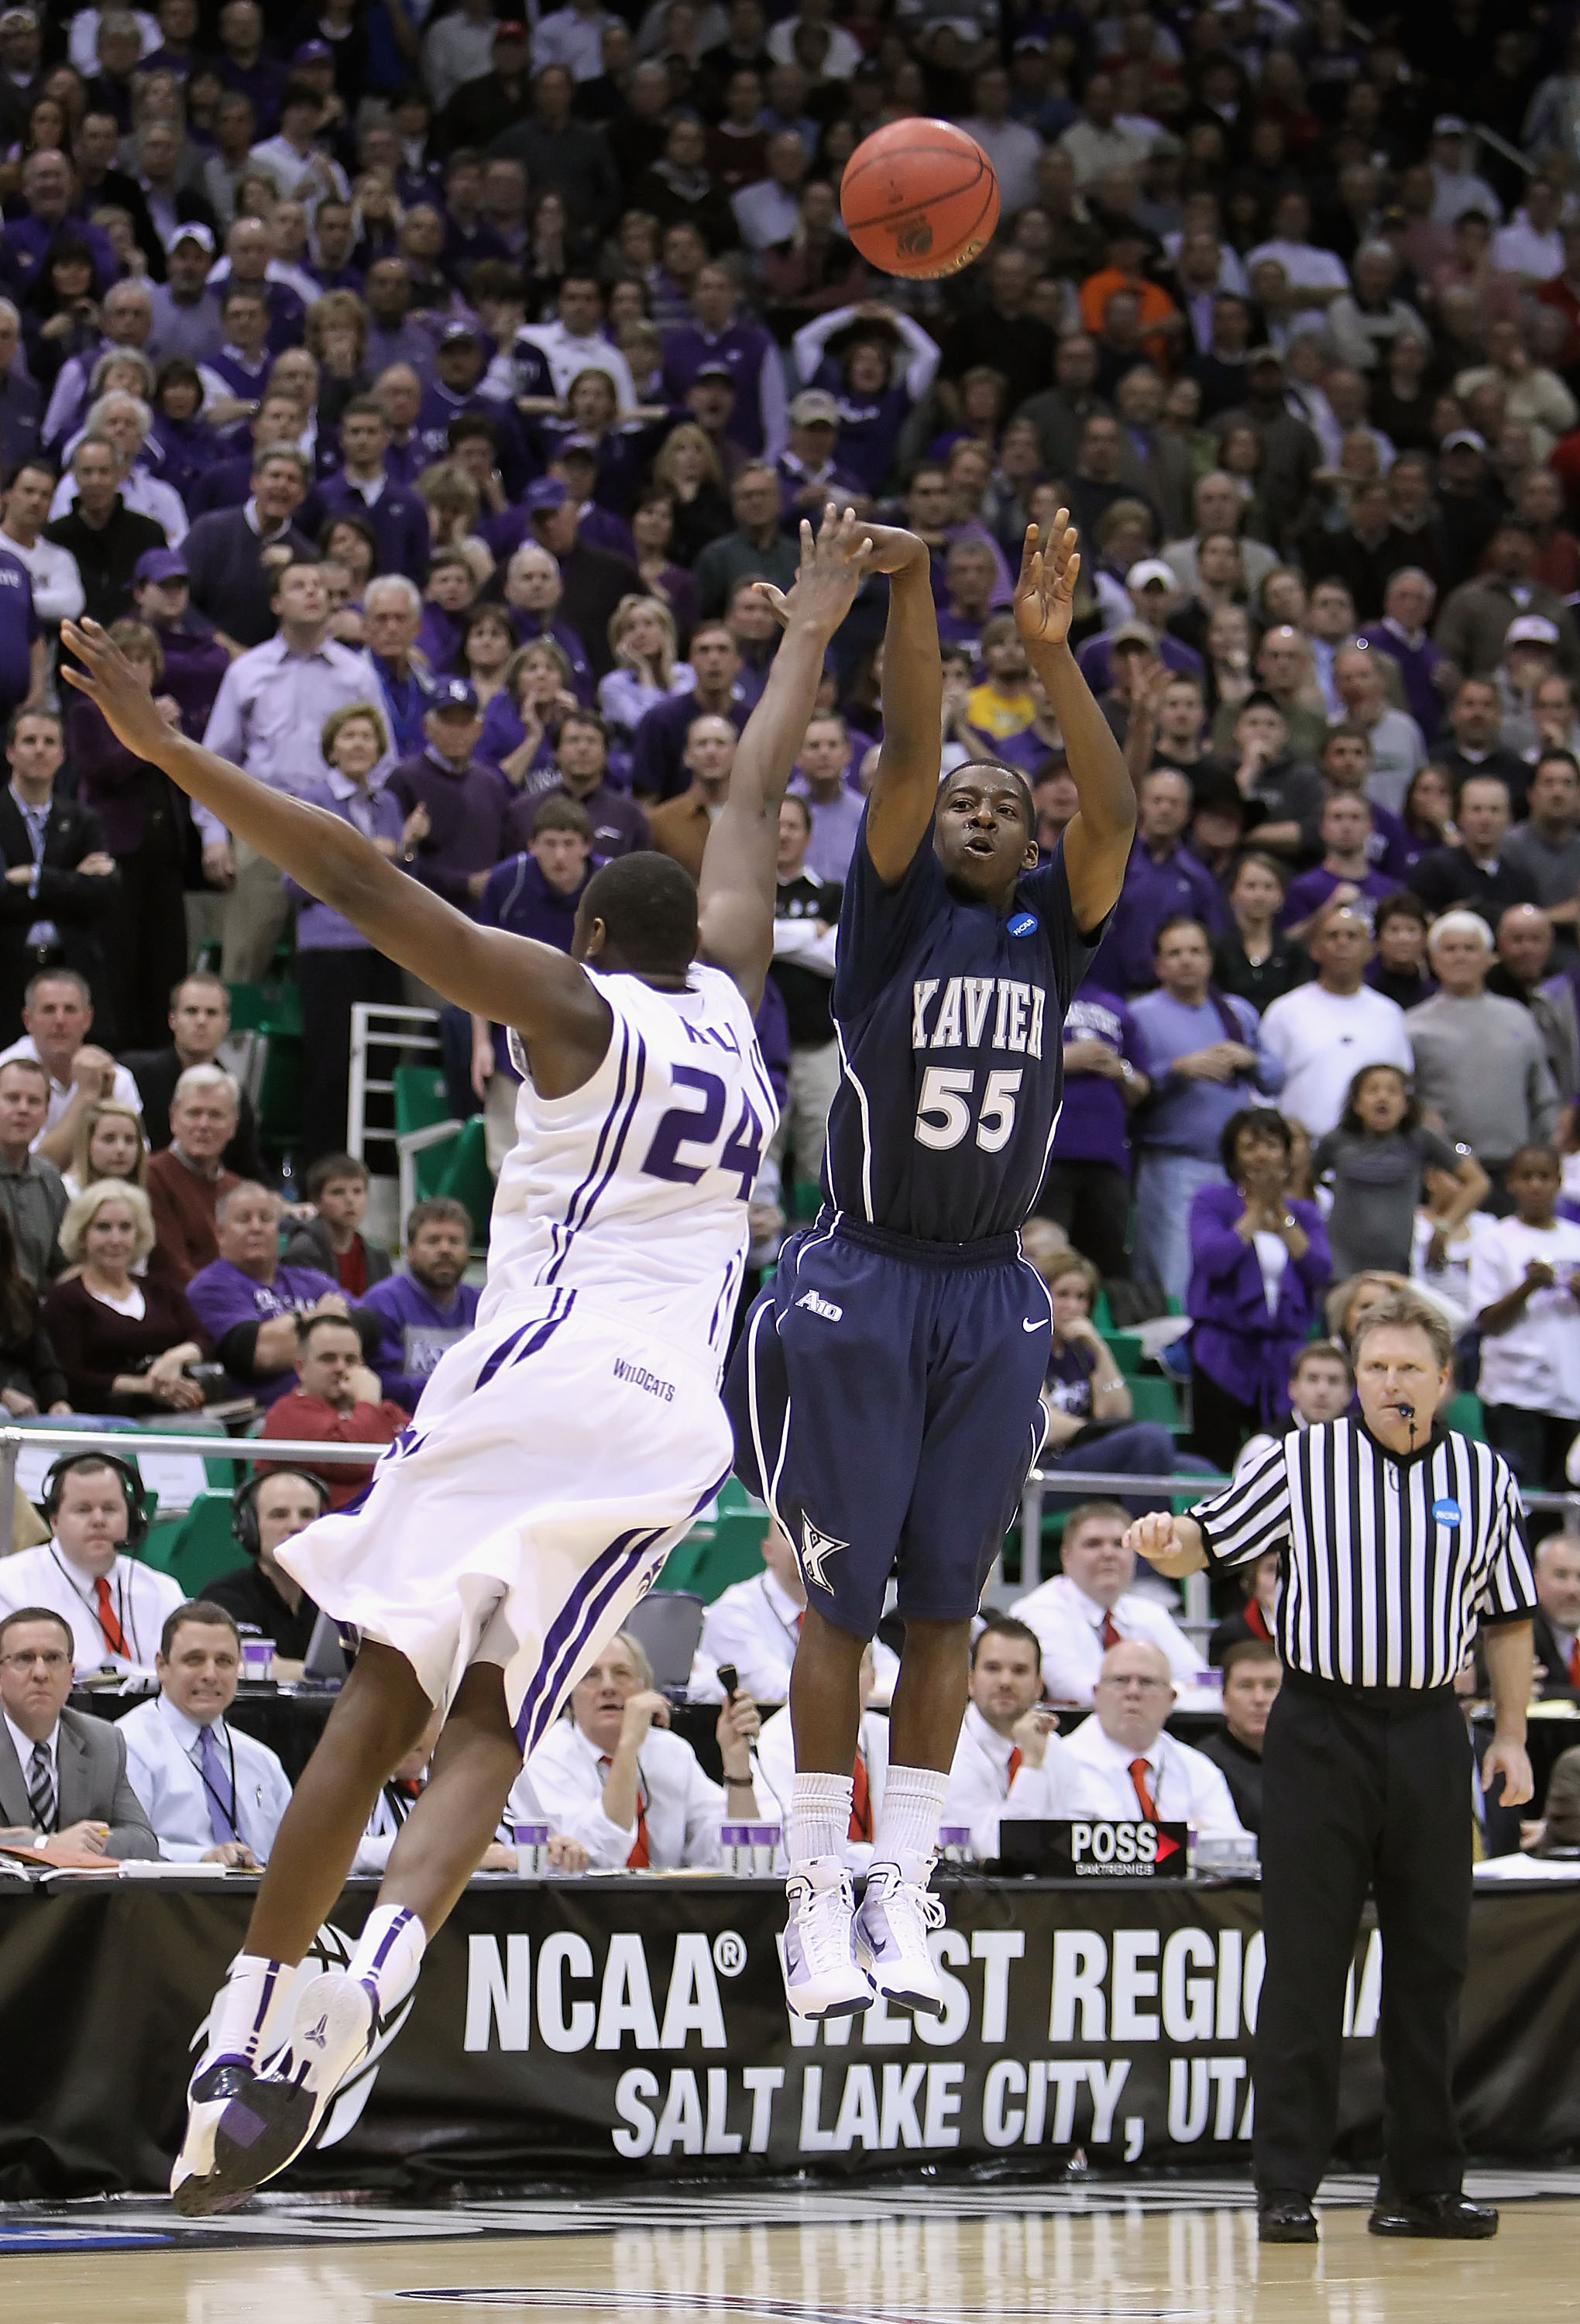 SALT LAKE CITY - MARCH 25:  Jordan Crawford #55 of the Xavier Musketeers hits a three point shot over Curtis Kelly #24 of the Kansas State Wildcats to force double overtime during the west regional semifinal of the 2010 NCAA men's basketball tournament at